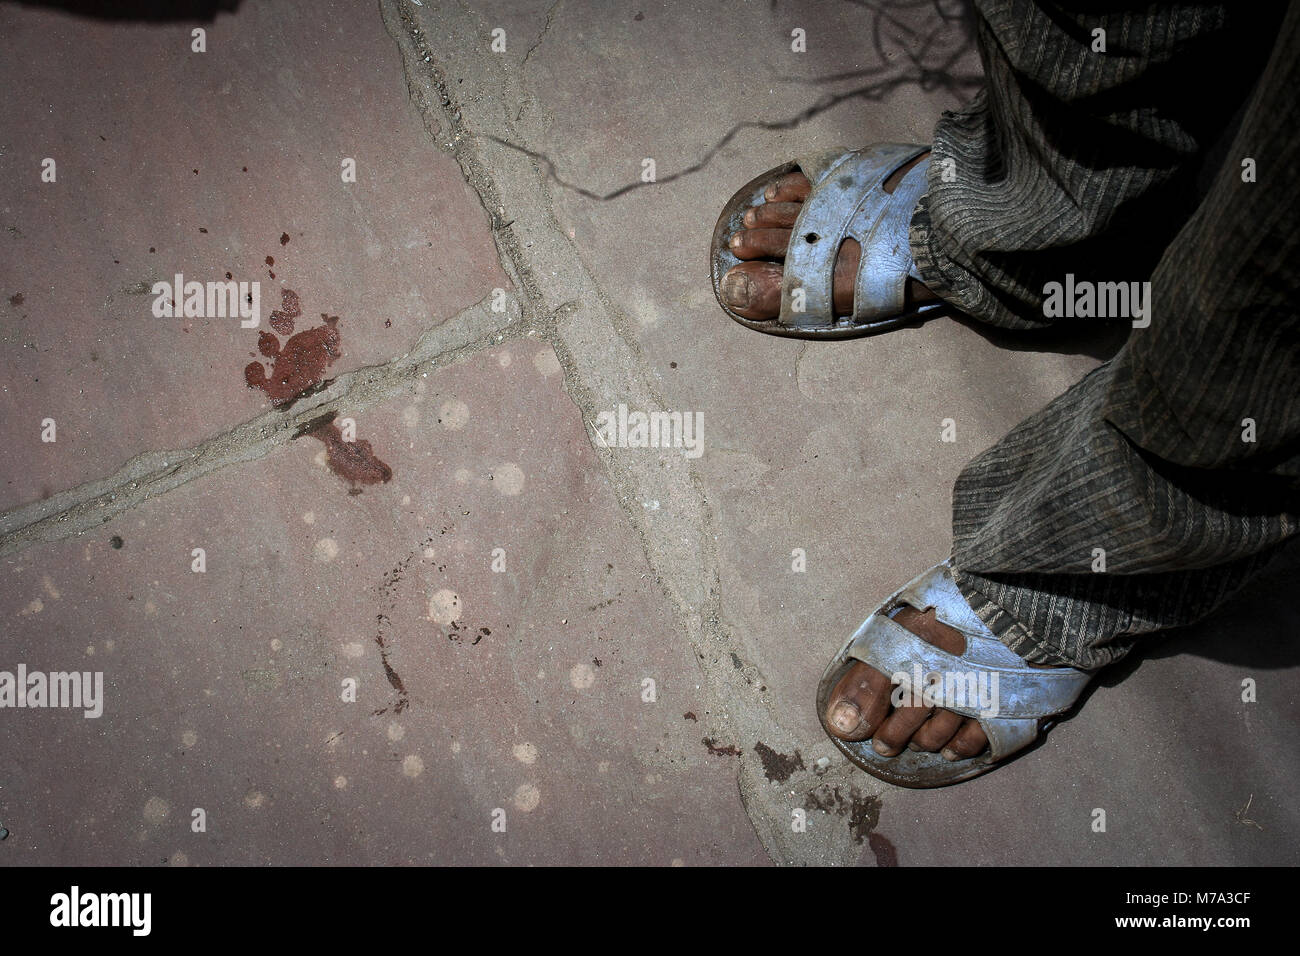 New Delhi, India:The imprint of a foot without shoes is opposed to the feet of a child who wears old sandals. - Stock Image